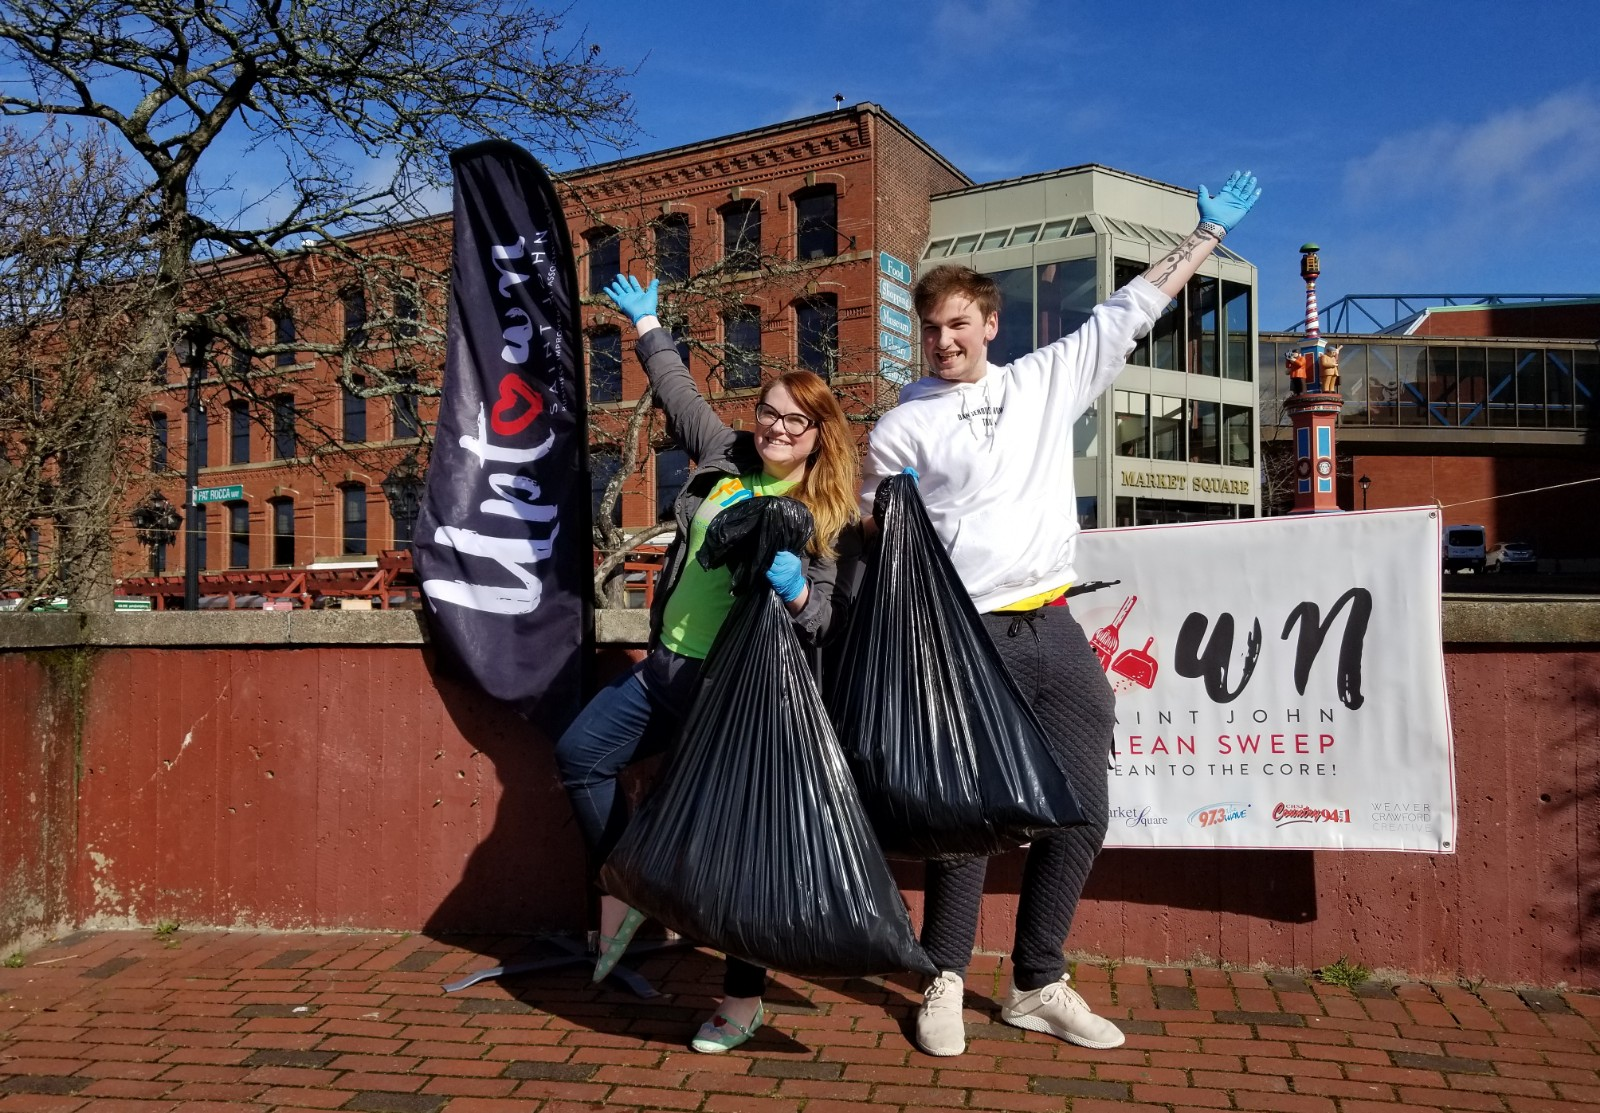 Uptown Clean Sweep 2018 – What A Great Clean Up Event!